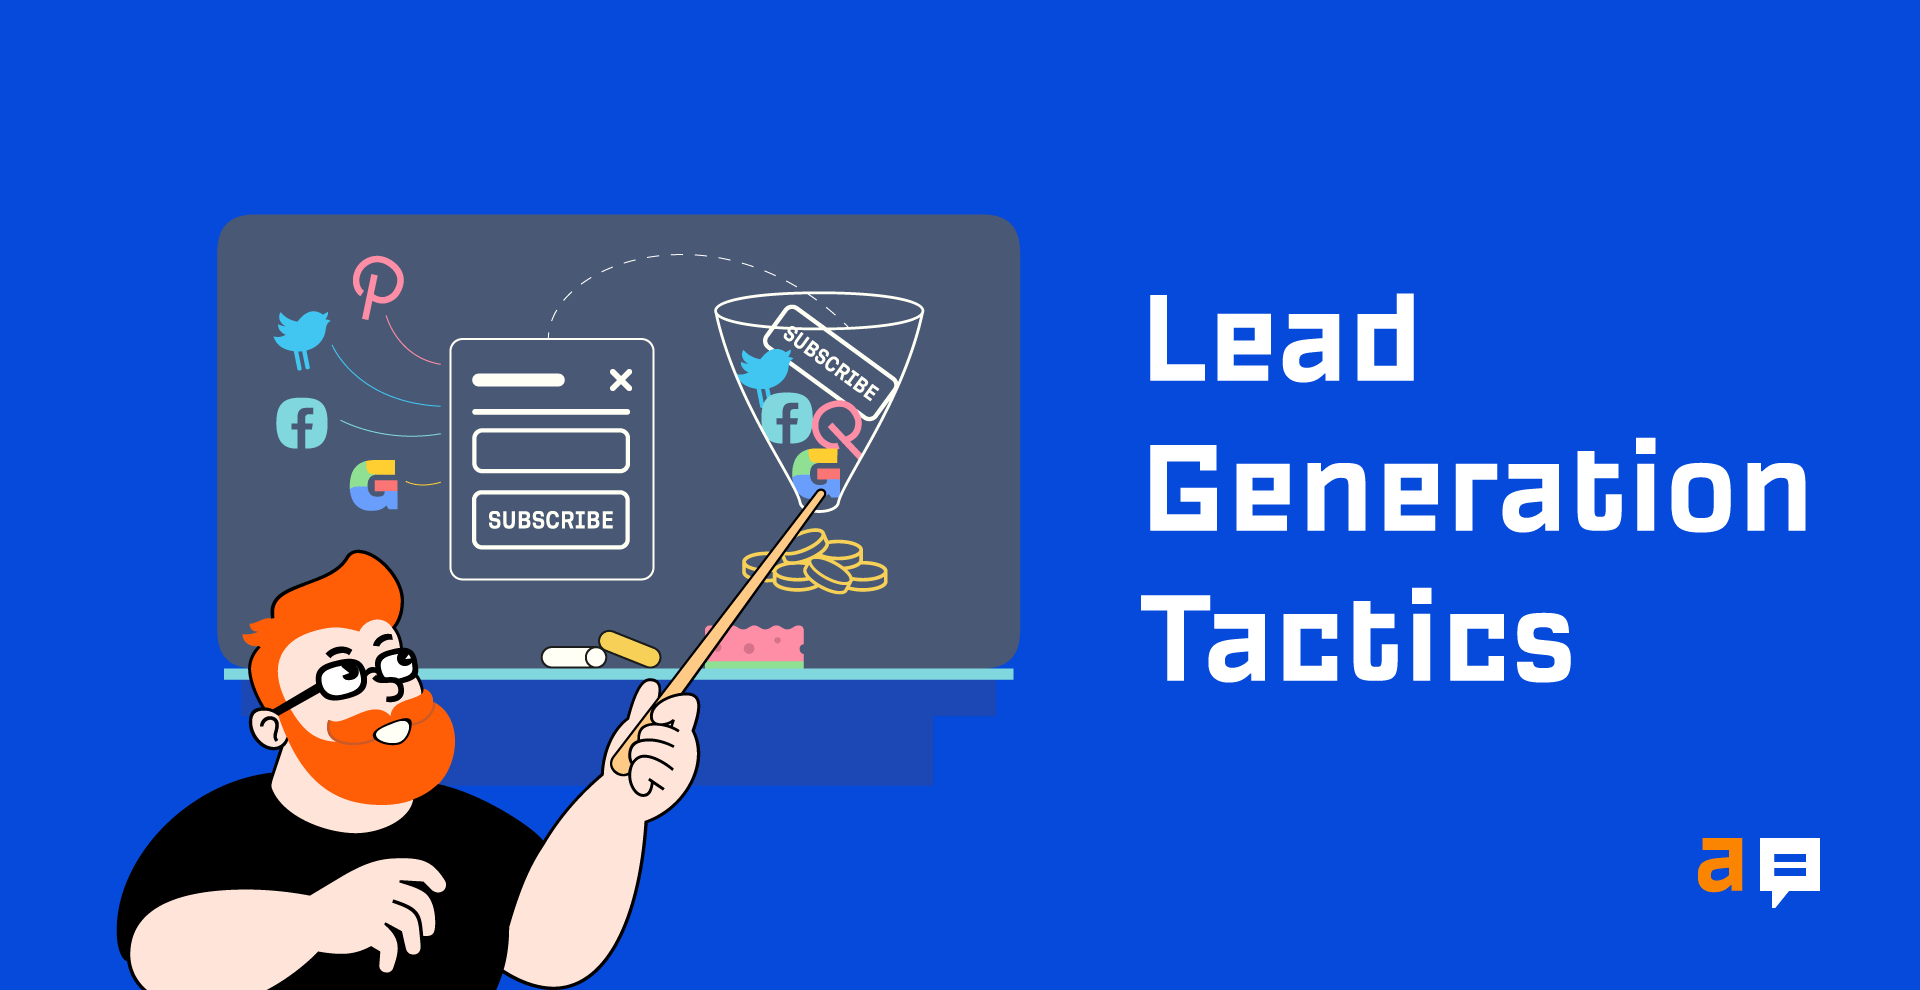 10 Lead Generation Tactics That Work (With Examples)